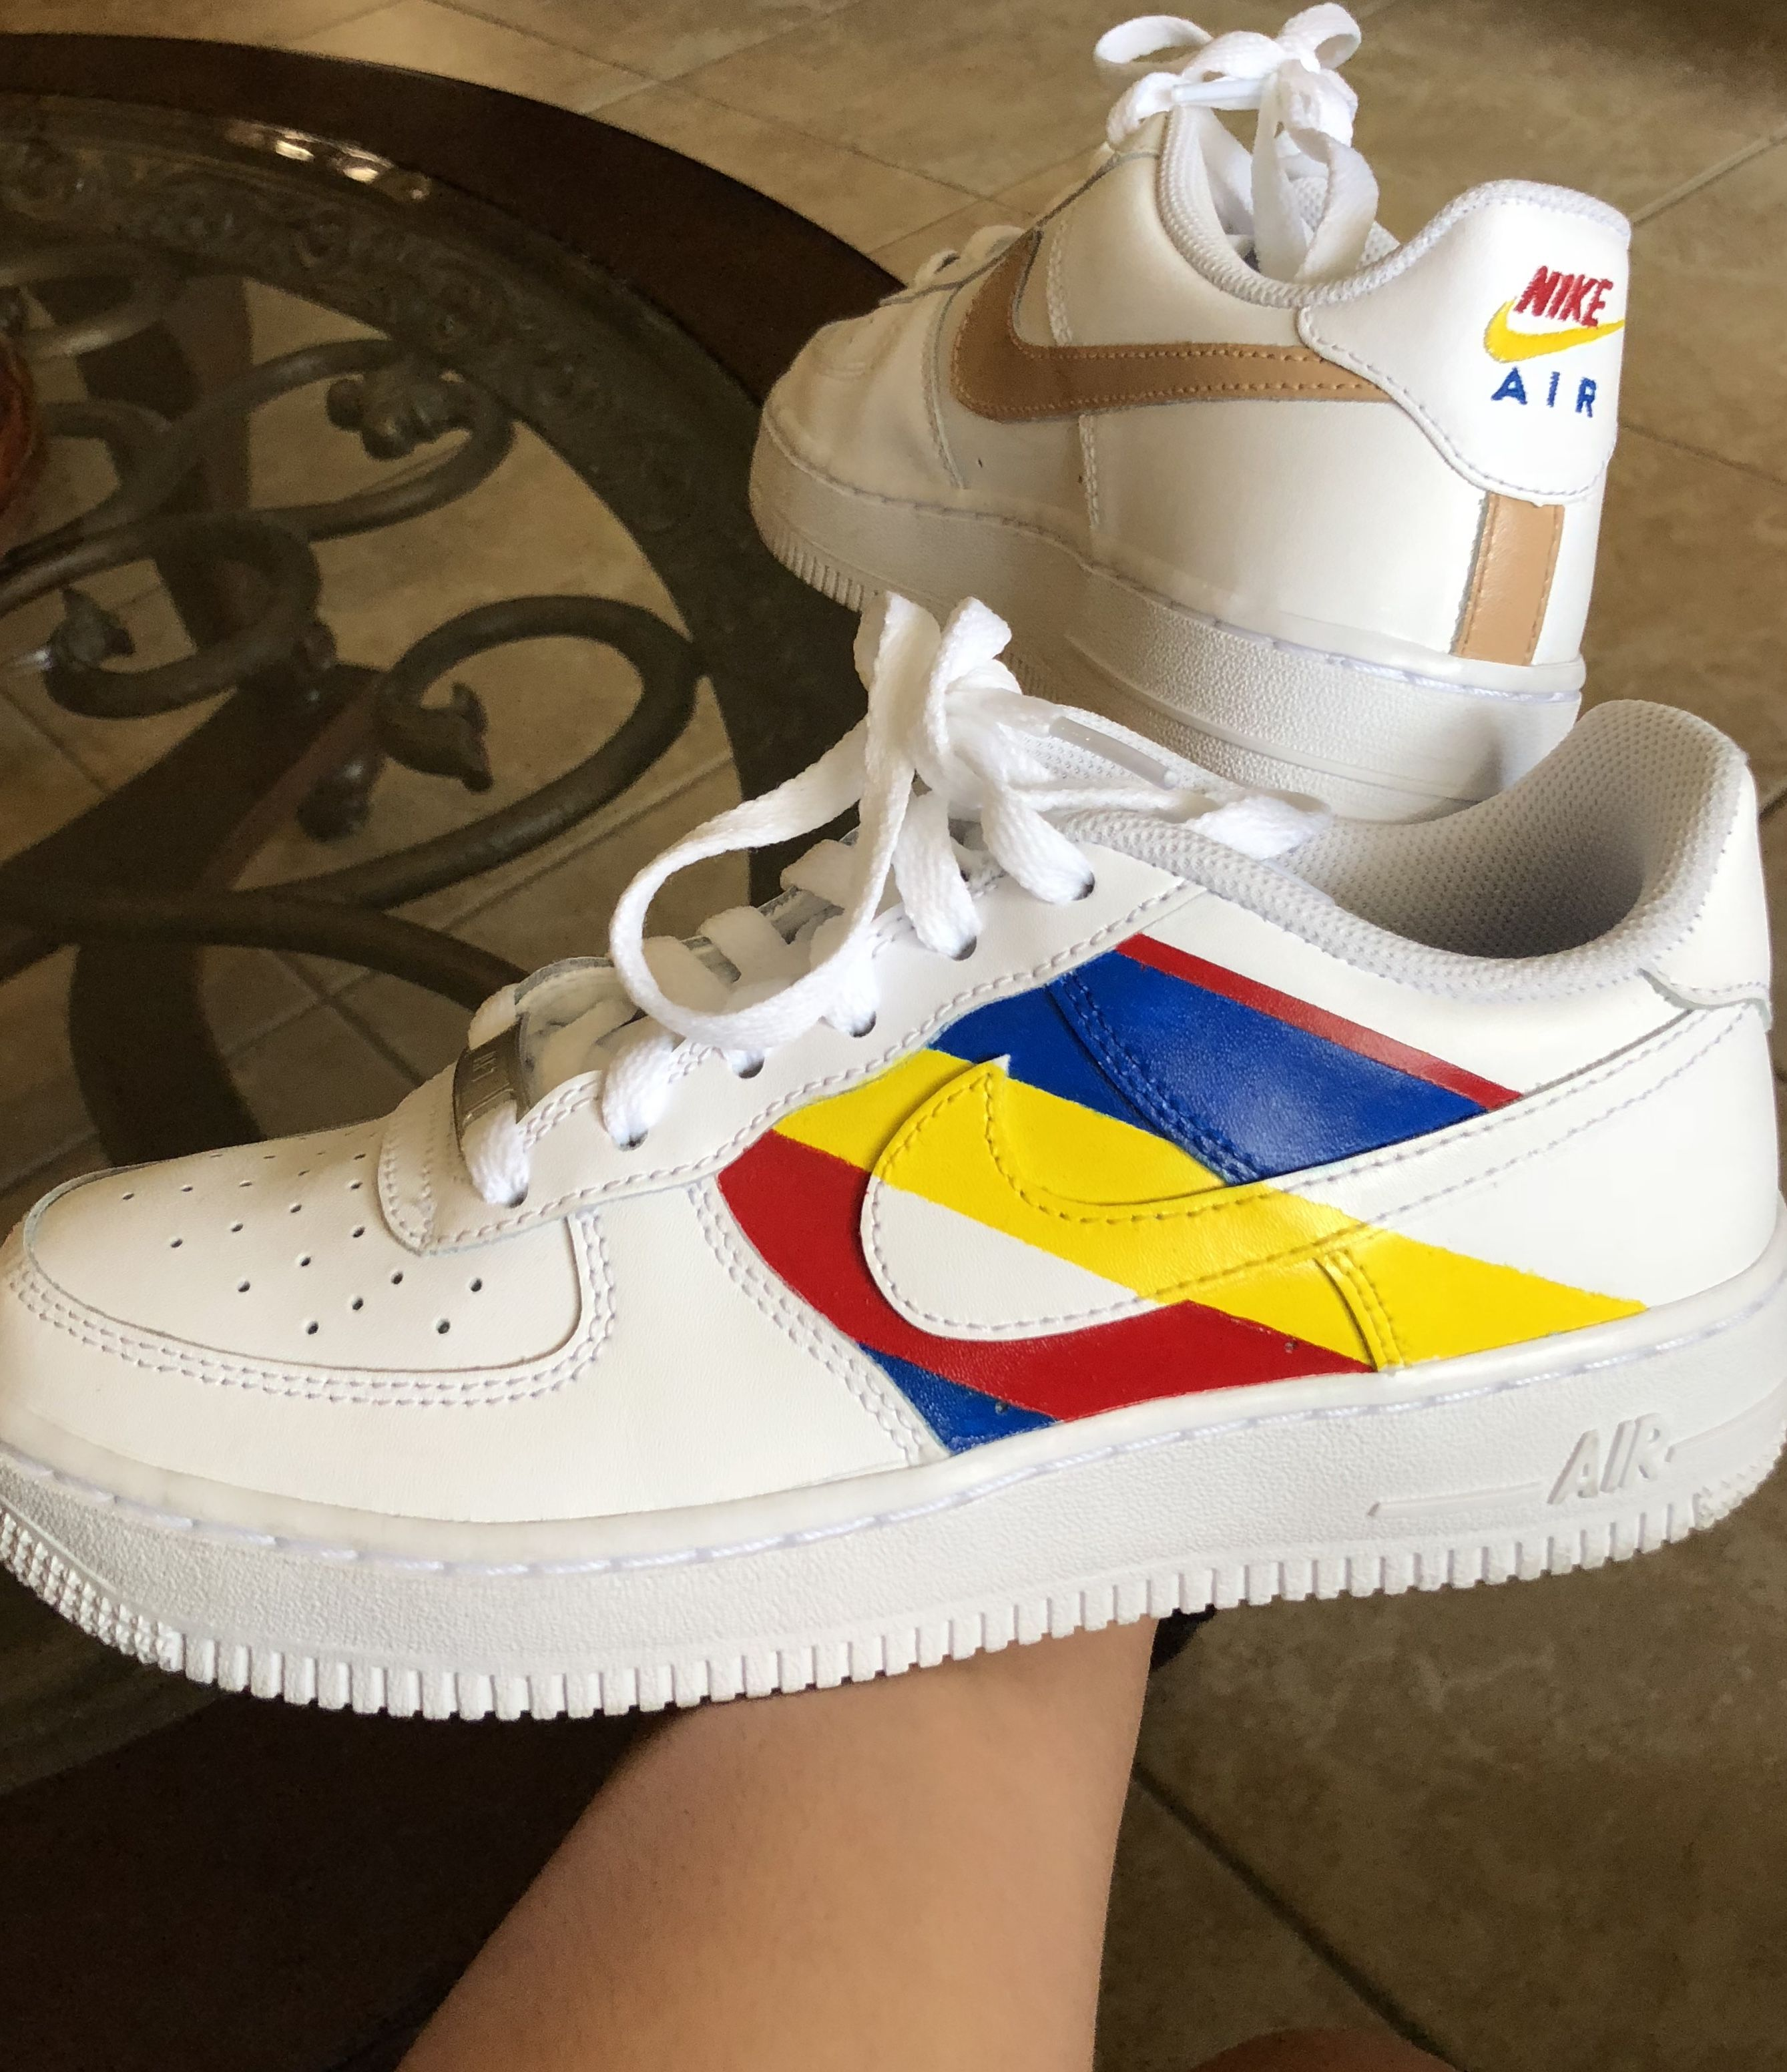 Nike Air Force 1 w primary colors   Black nike shoes, Nike